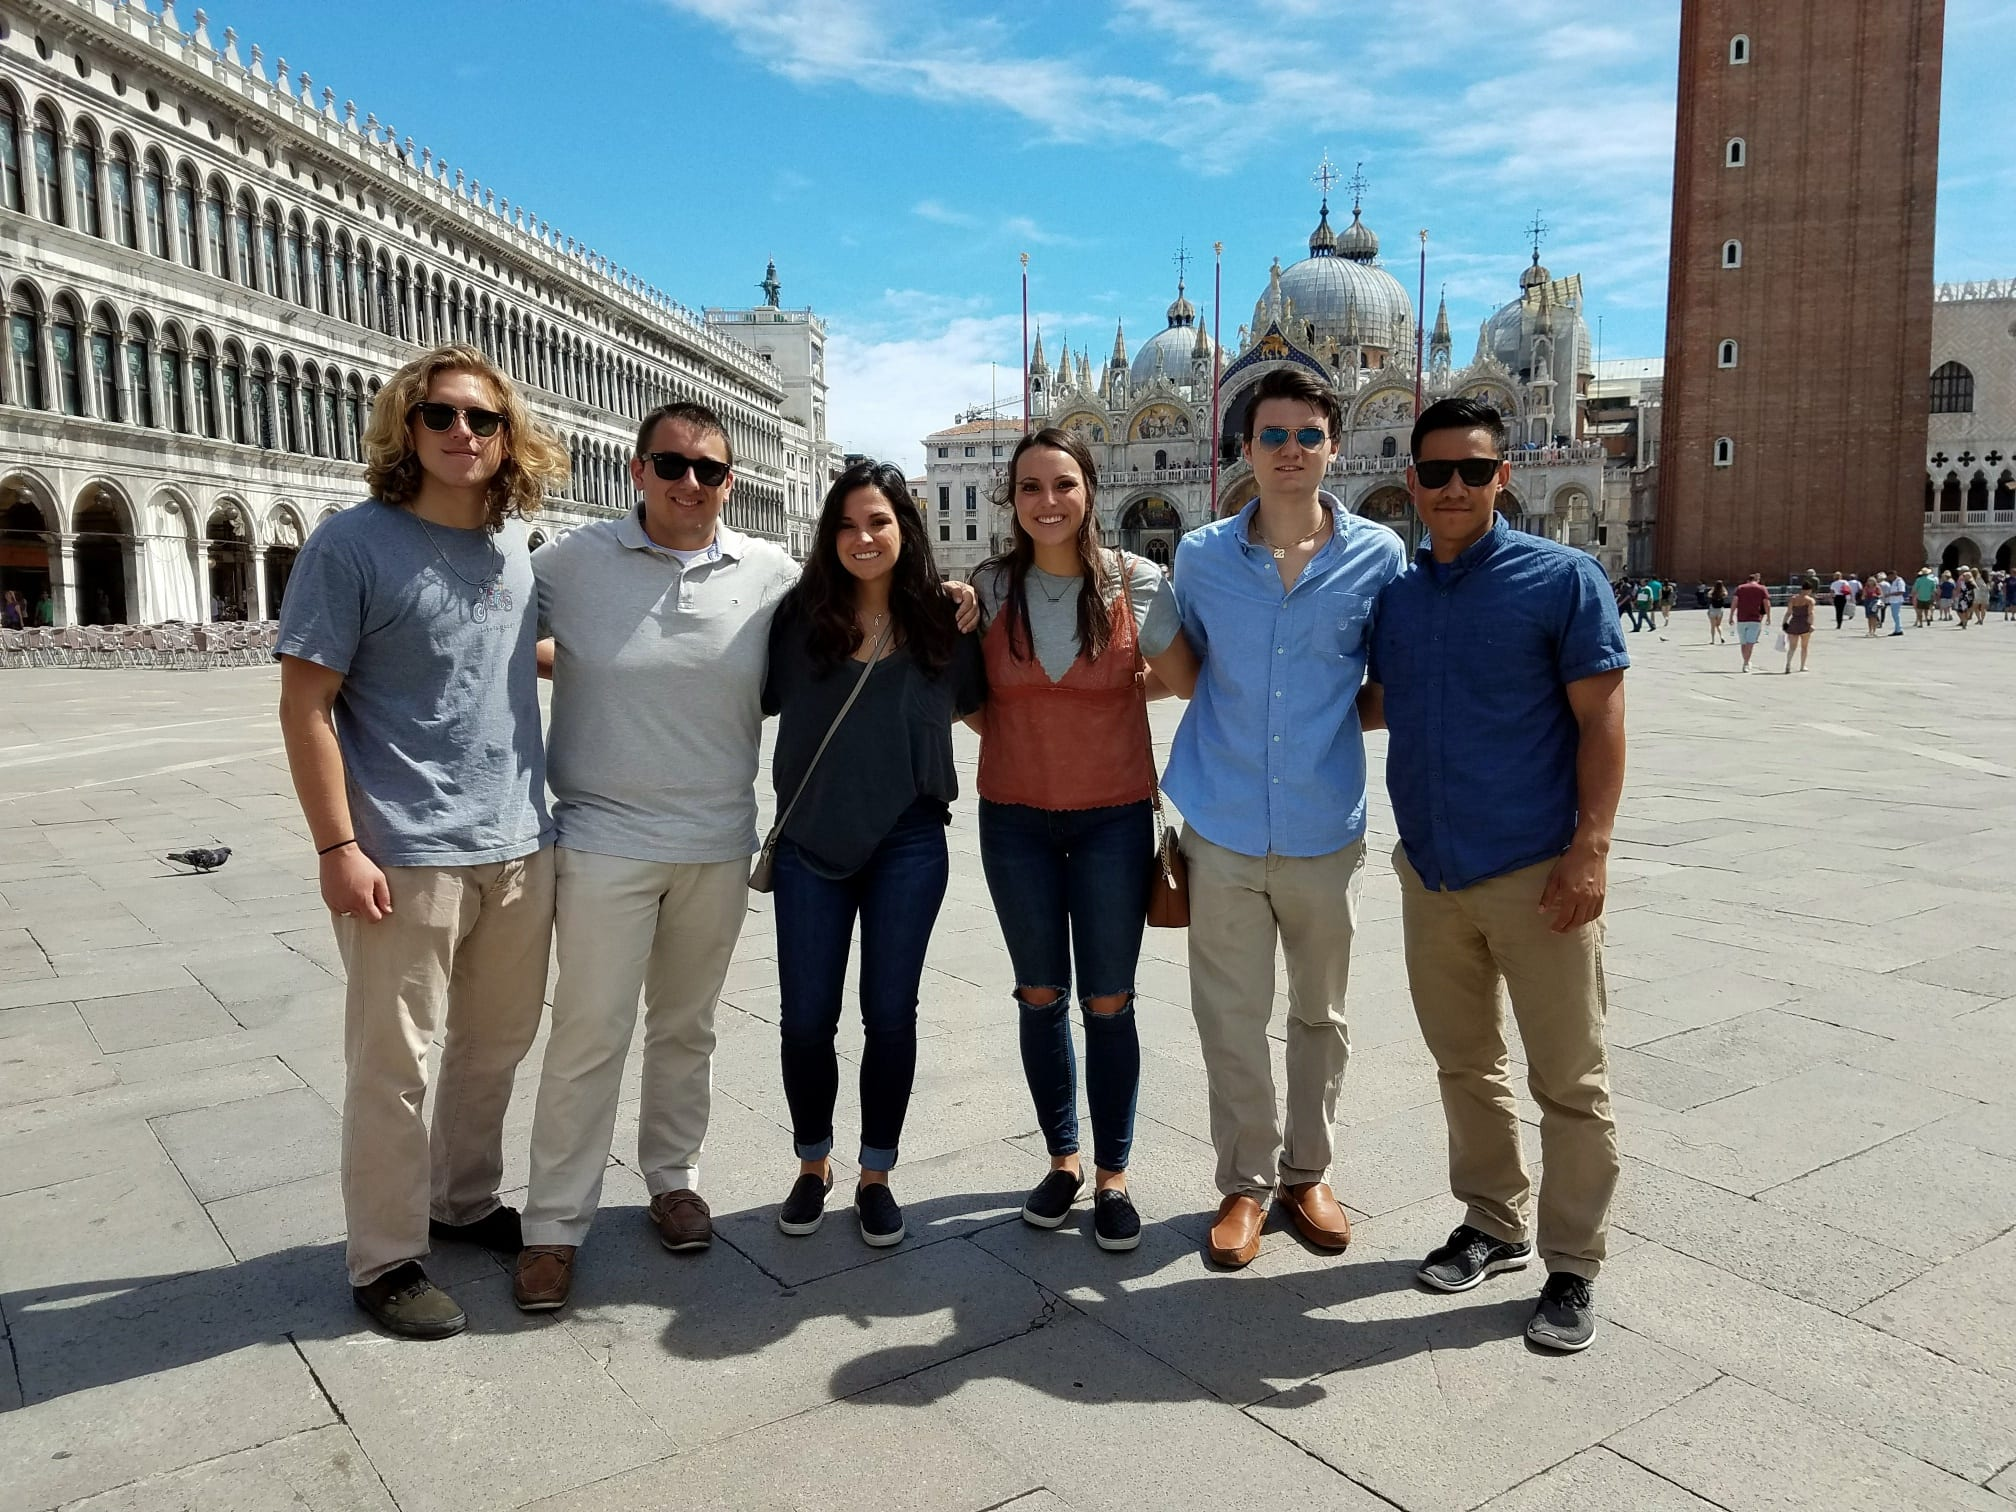 SPEA students studying abroad standing in a plaza in Venice.